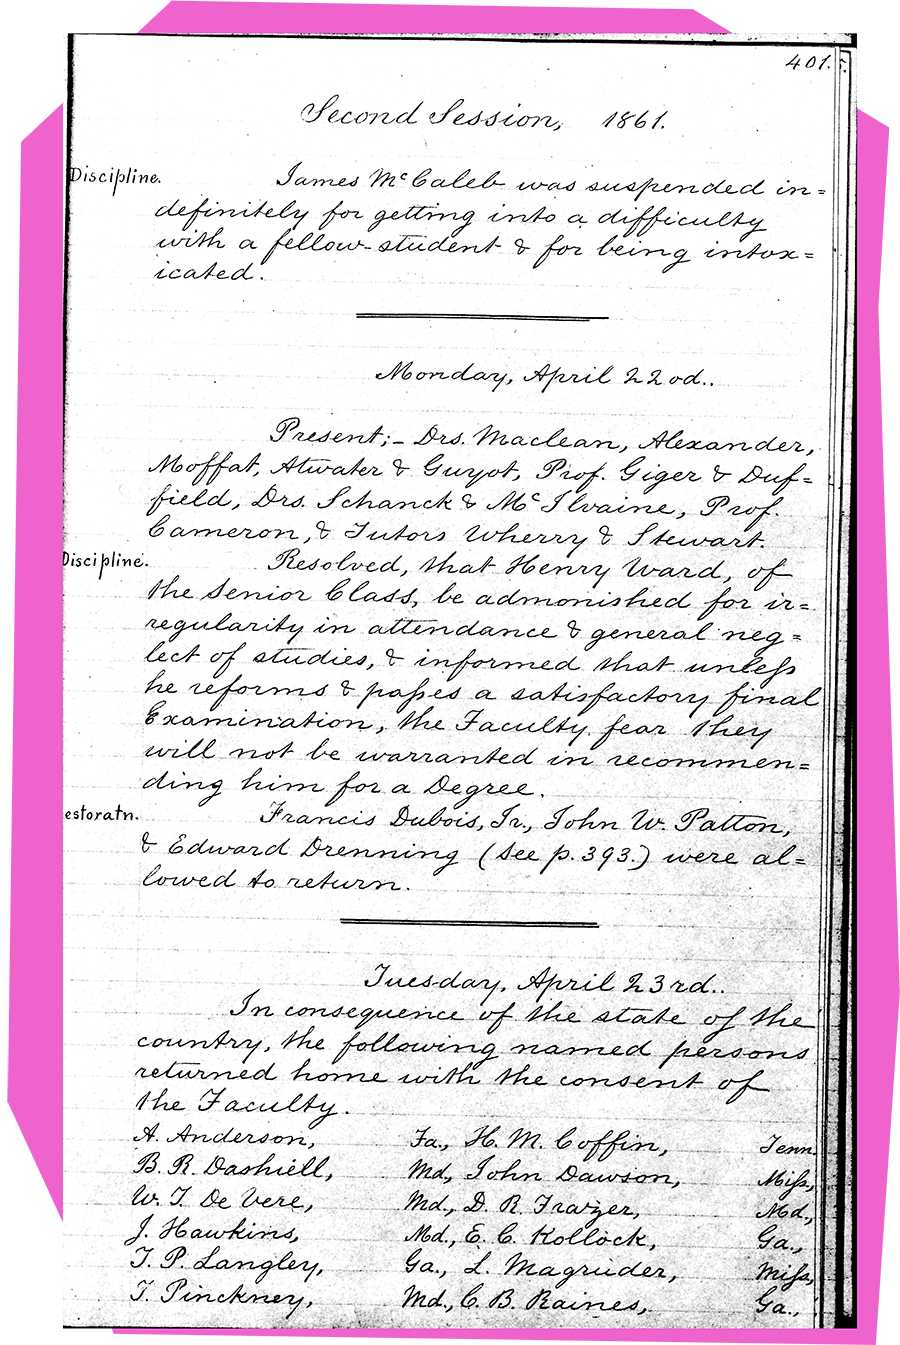 List of southern students excused from classes at Princeton because of the Civil War.